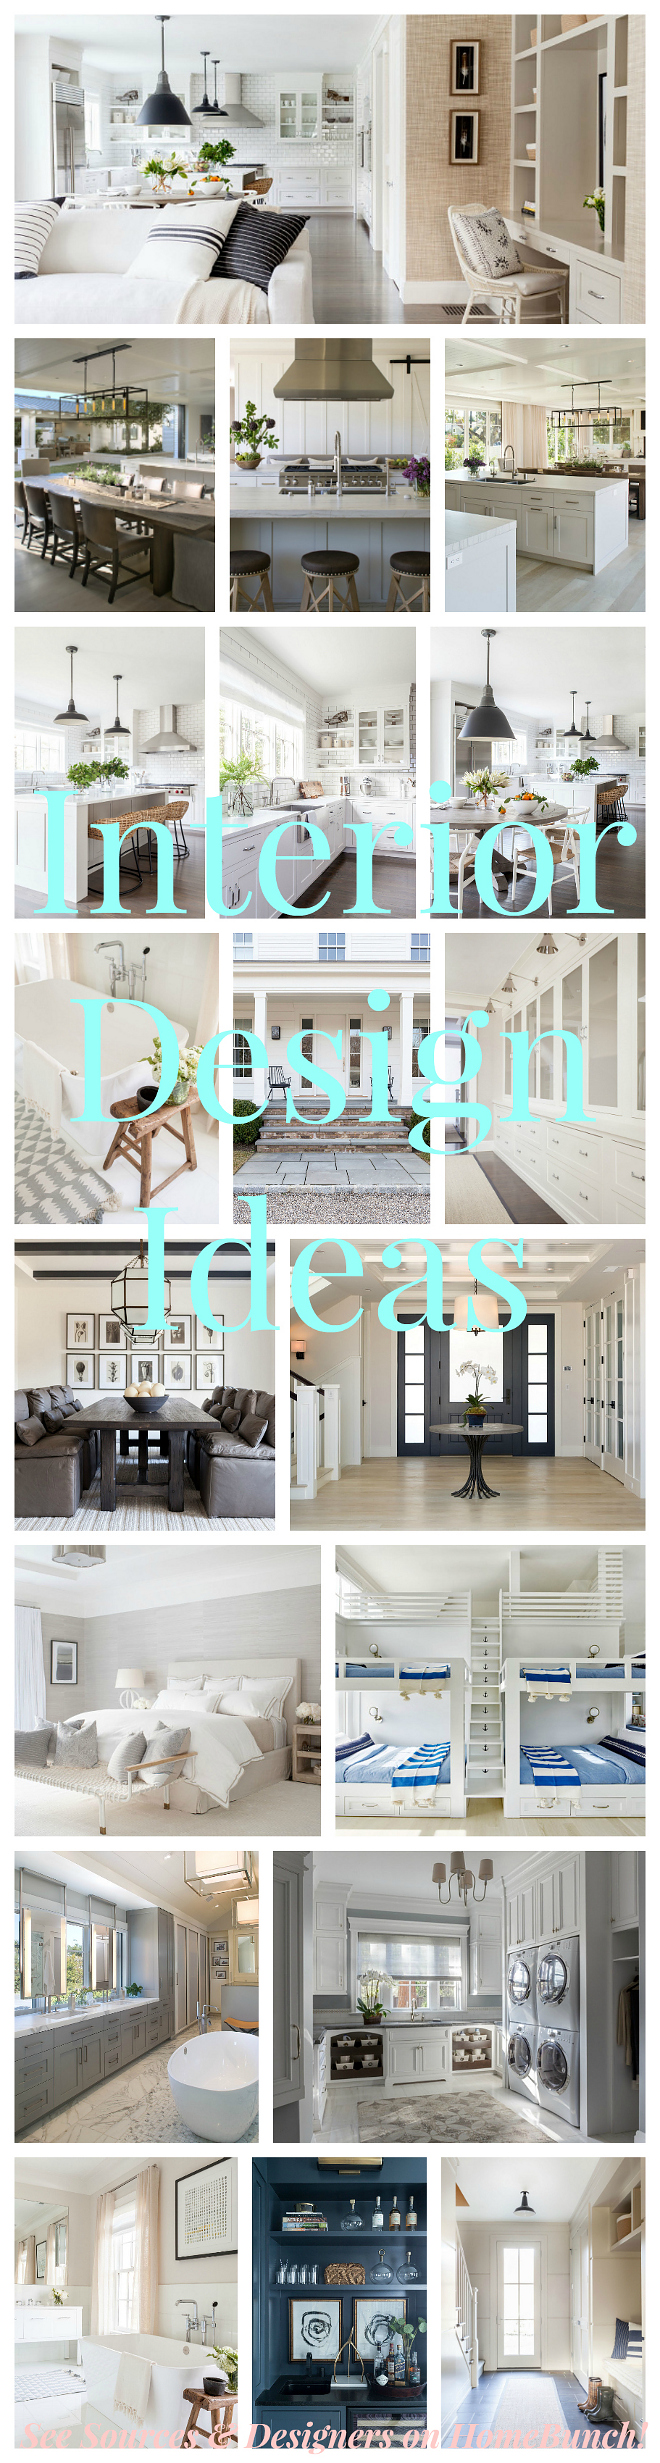 Beautiful Homes of Instagram - Home Bunch Interior Design Ideas